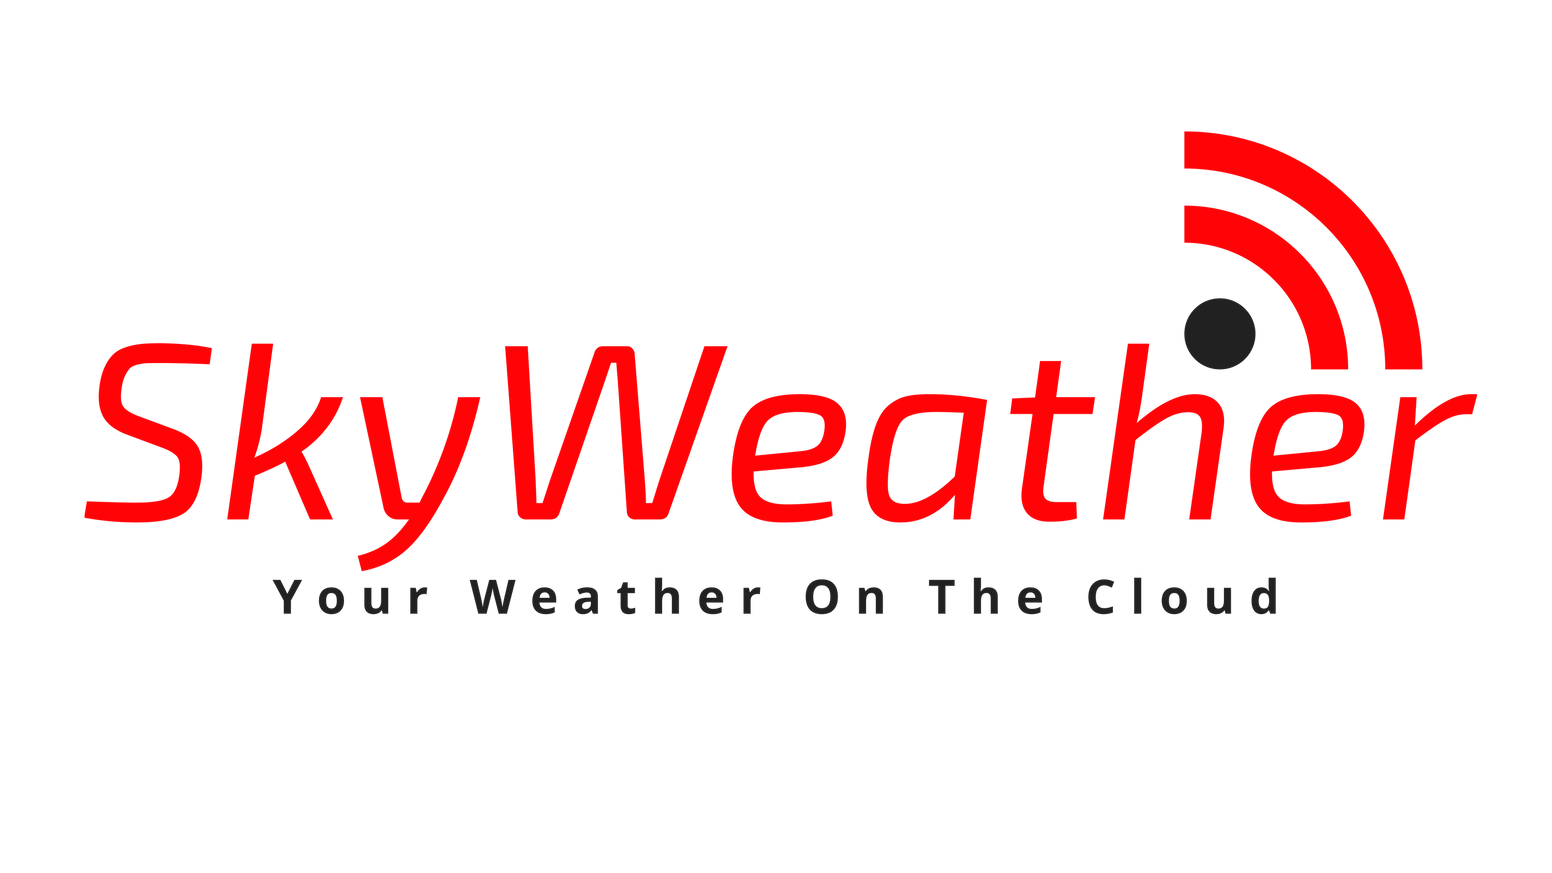 SkyWeather - A Raspberry Pi based easy to put together (no soldering!)  Weather Station.  All documentation updates are onhttps://shop.switchdoc.com/products/skyweather-raspberry-pi-based-weather-station-kit-for-the-cloud